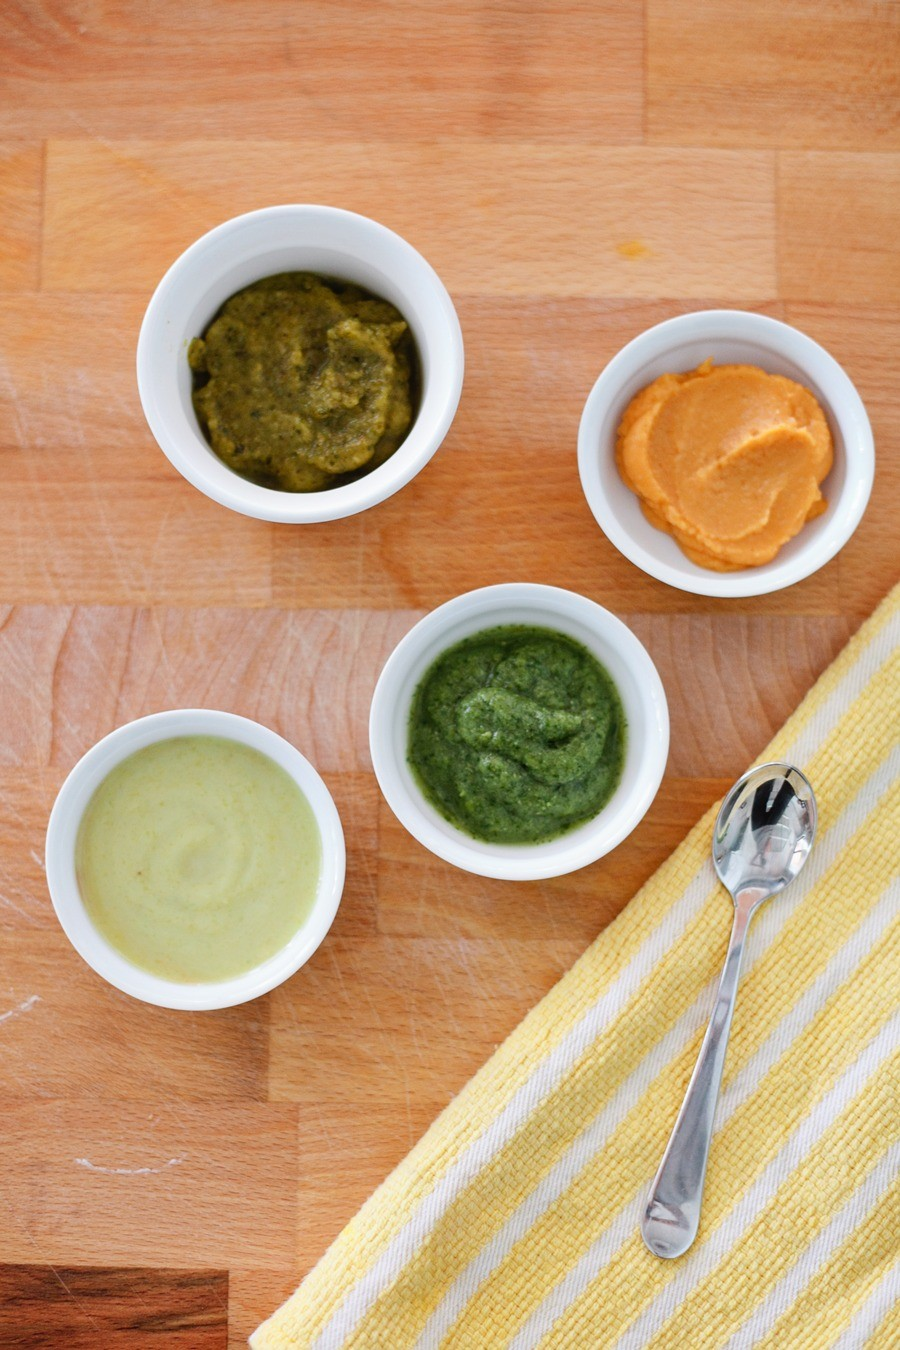 Easy and Simple Homemade Baby Food recipes and tips for healthy homemade baby food by popular Florida mom blogger Tabitha Blue of Fresh Mommy Blog.